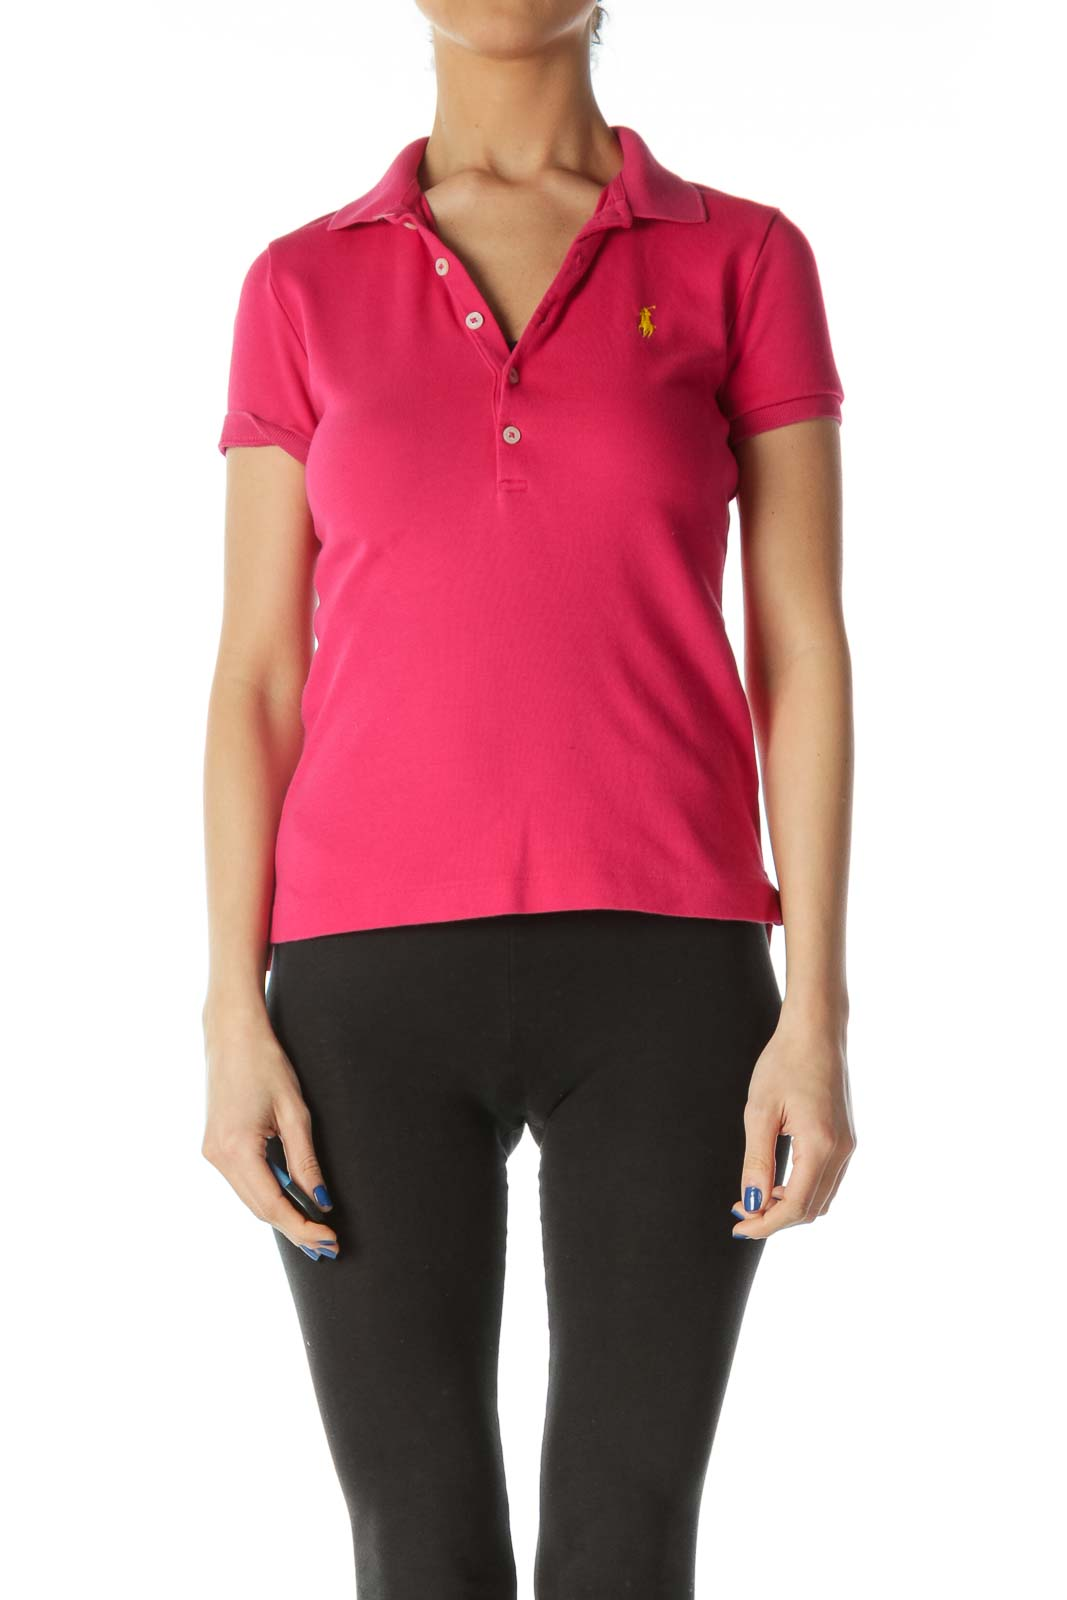 Hot Pink Polo Shirt Front